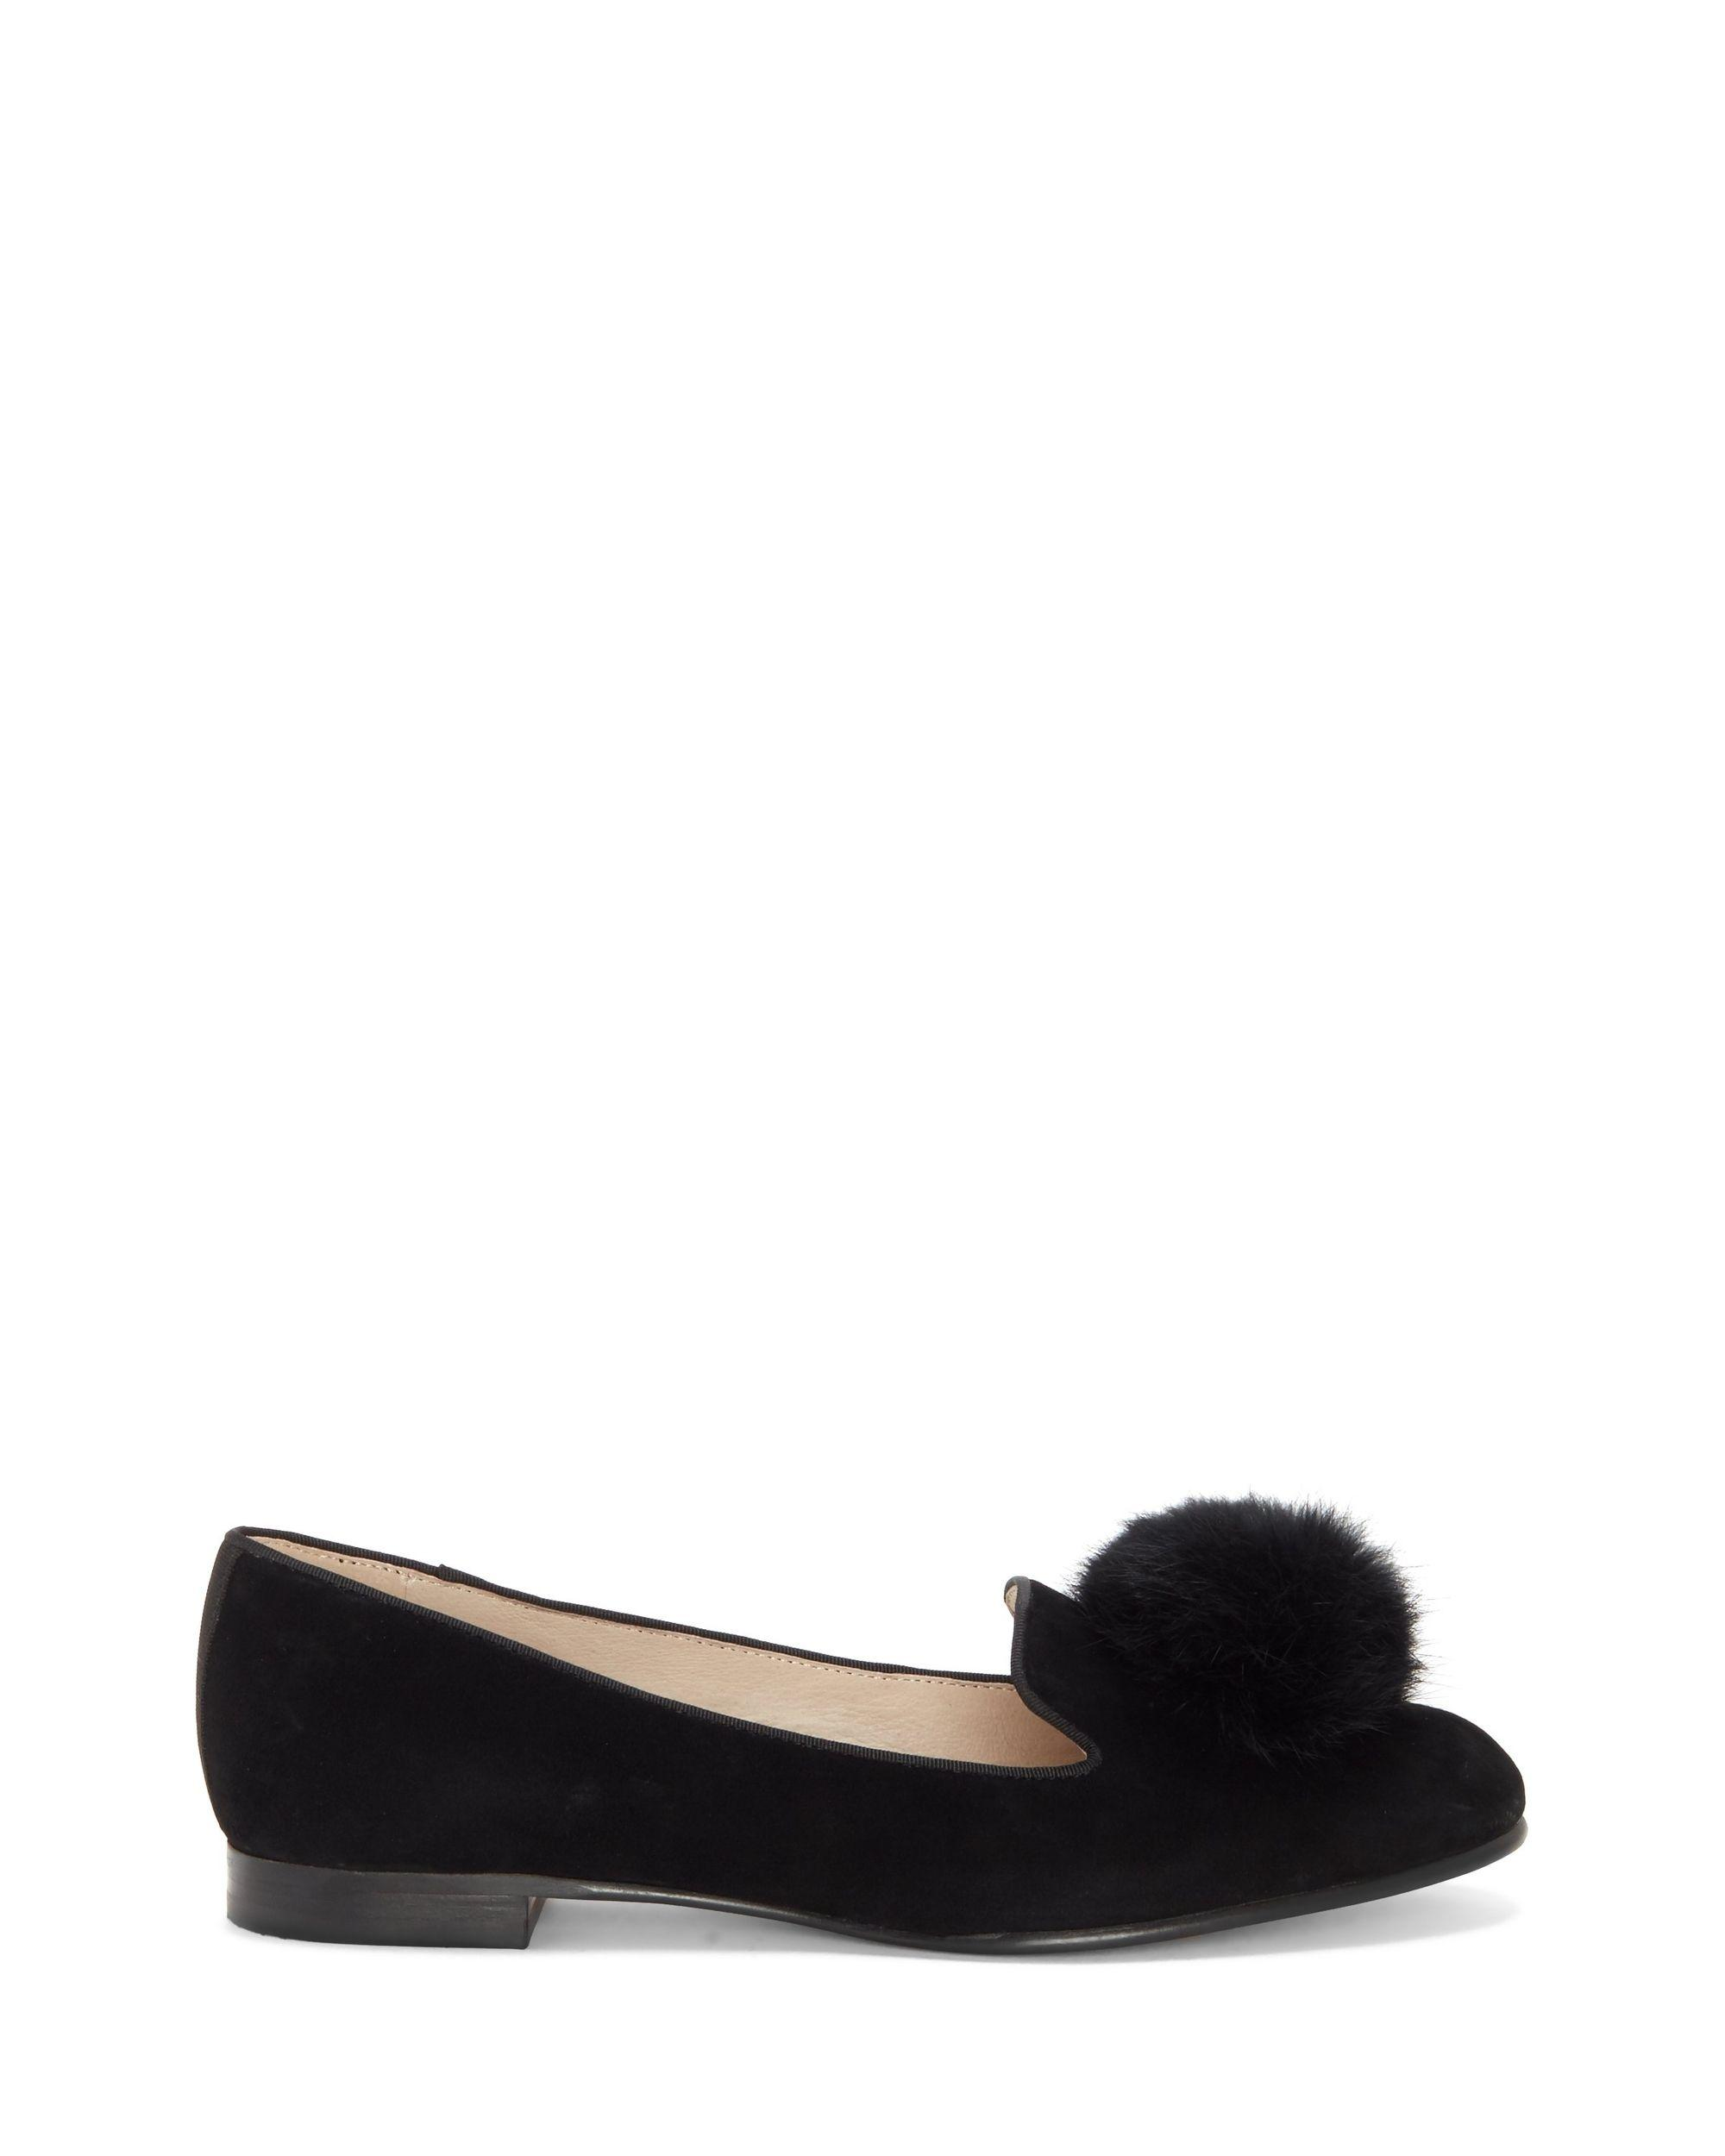 00479e5a013 Lyst - Vince Camuto Louise Et Cie Andres – Pompom Loafer in Black - Save 53%